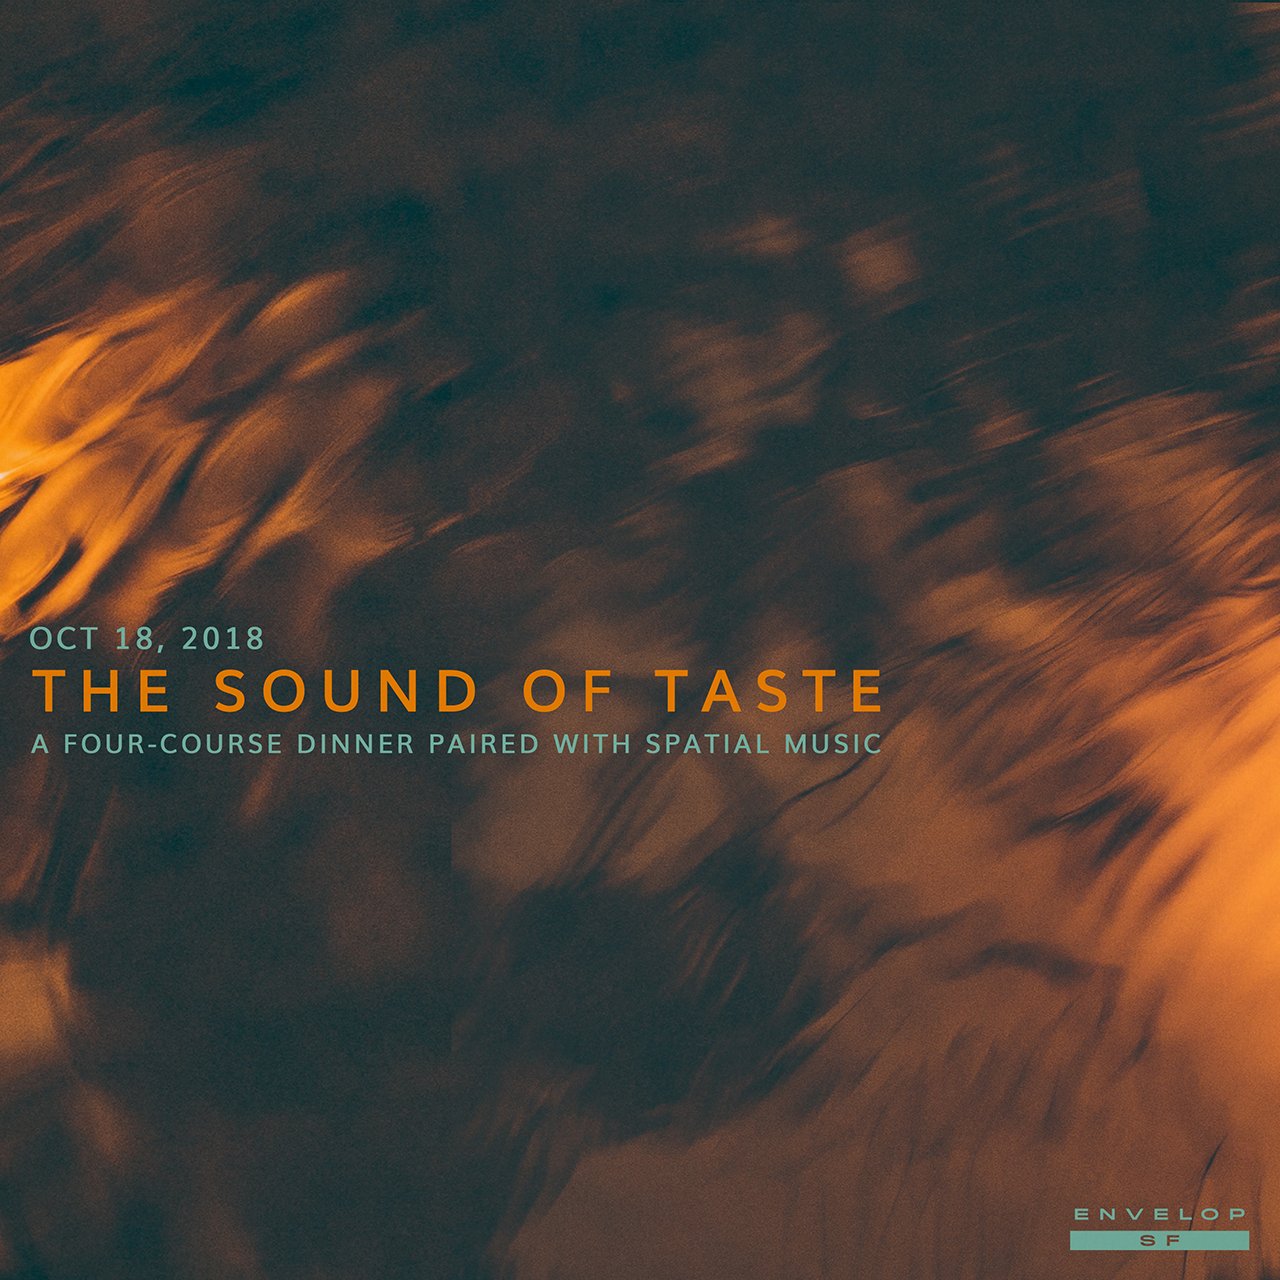 The Sound of Taste   Thu October 18, 2018 | At Envelop SF | 6:30 PM doors